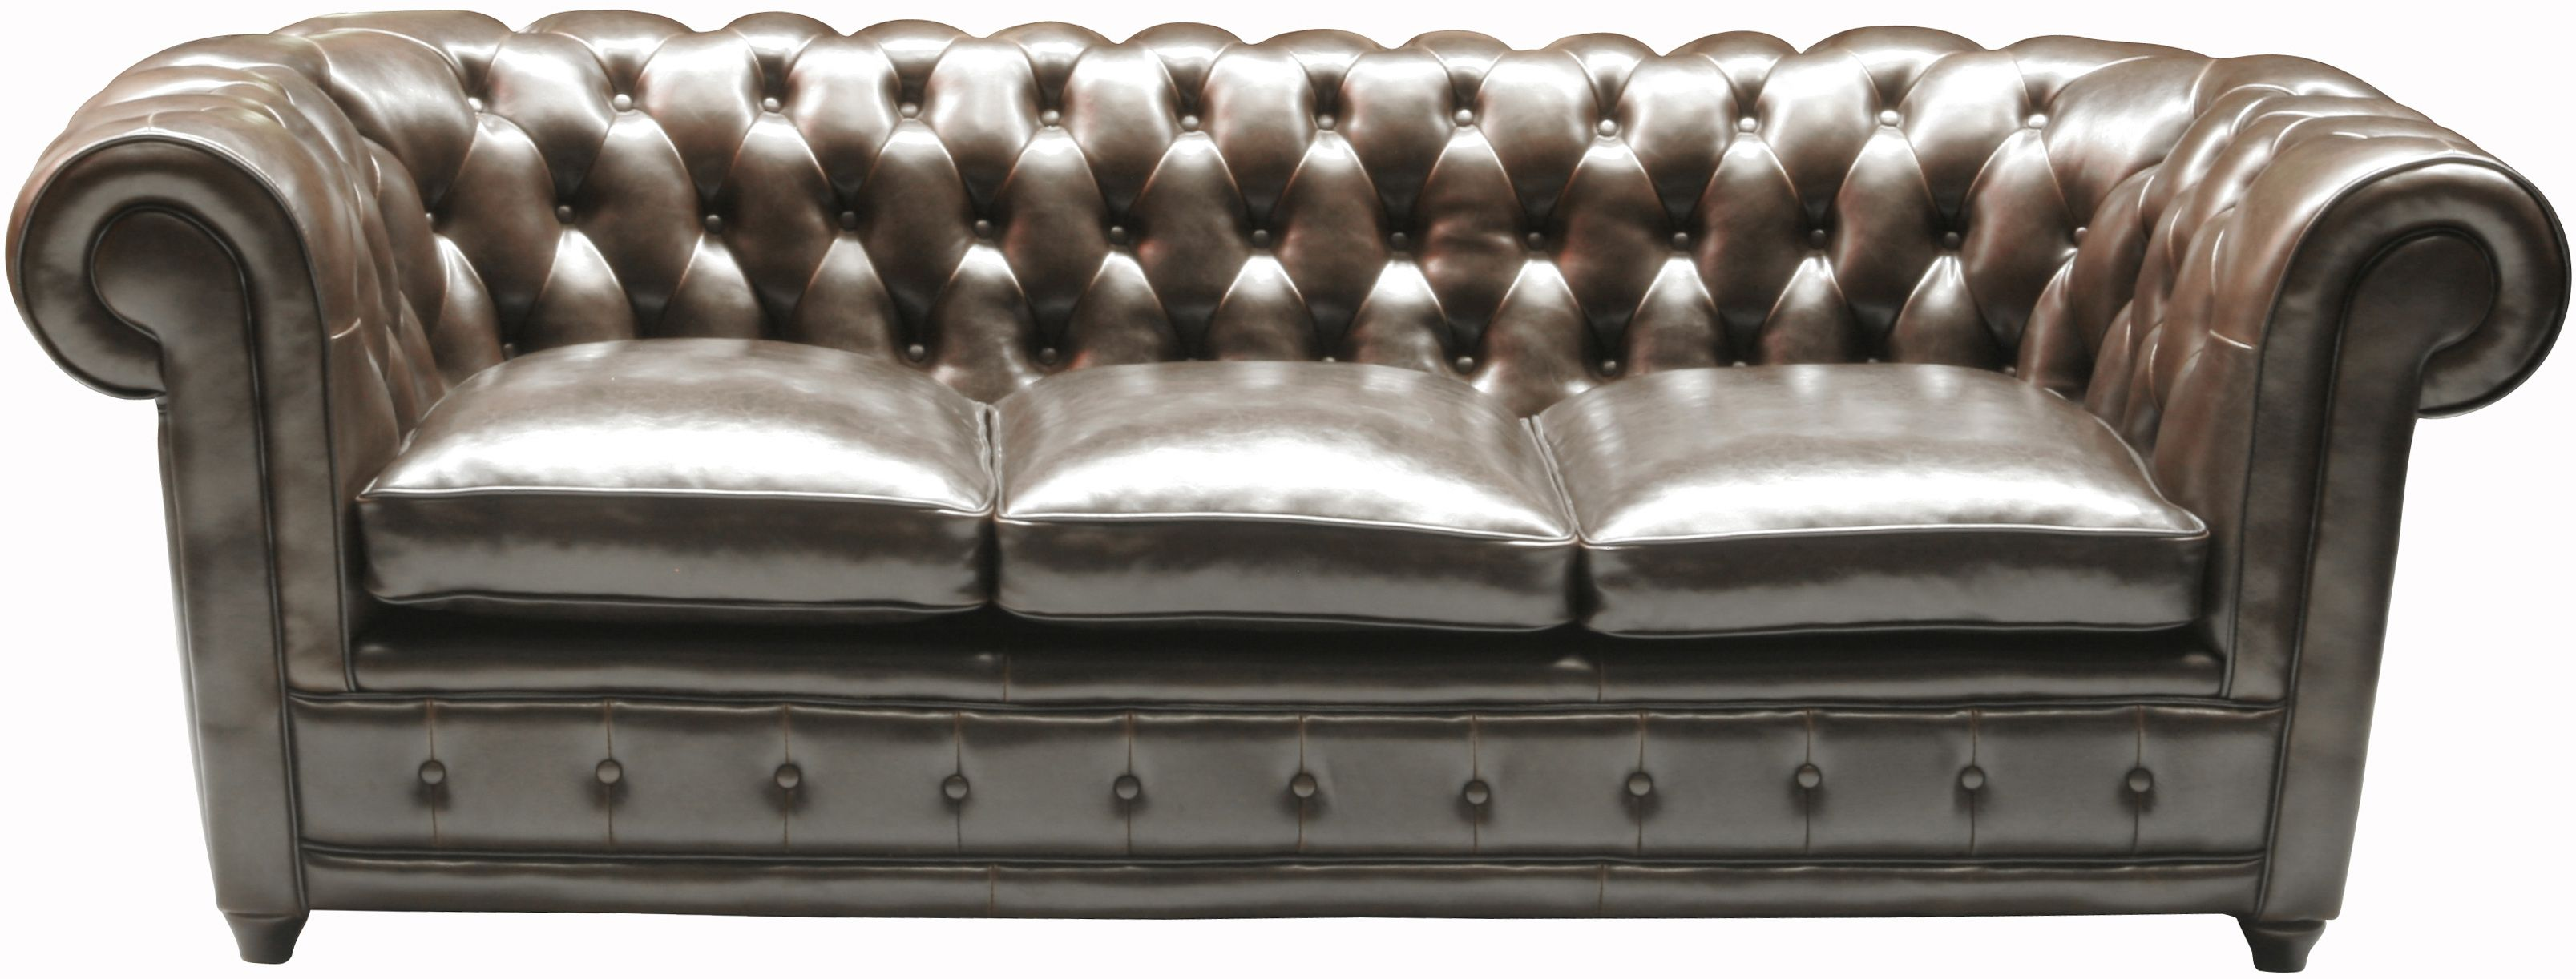 KARE Design Sofa Oxford 3 Sitzer Napalon in englischem Chesterfield